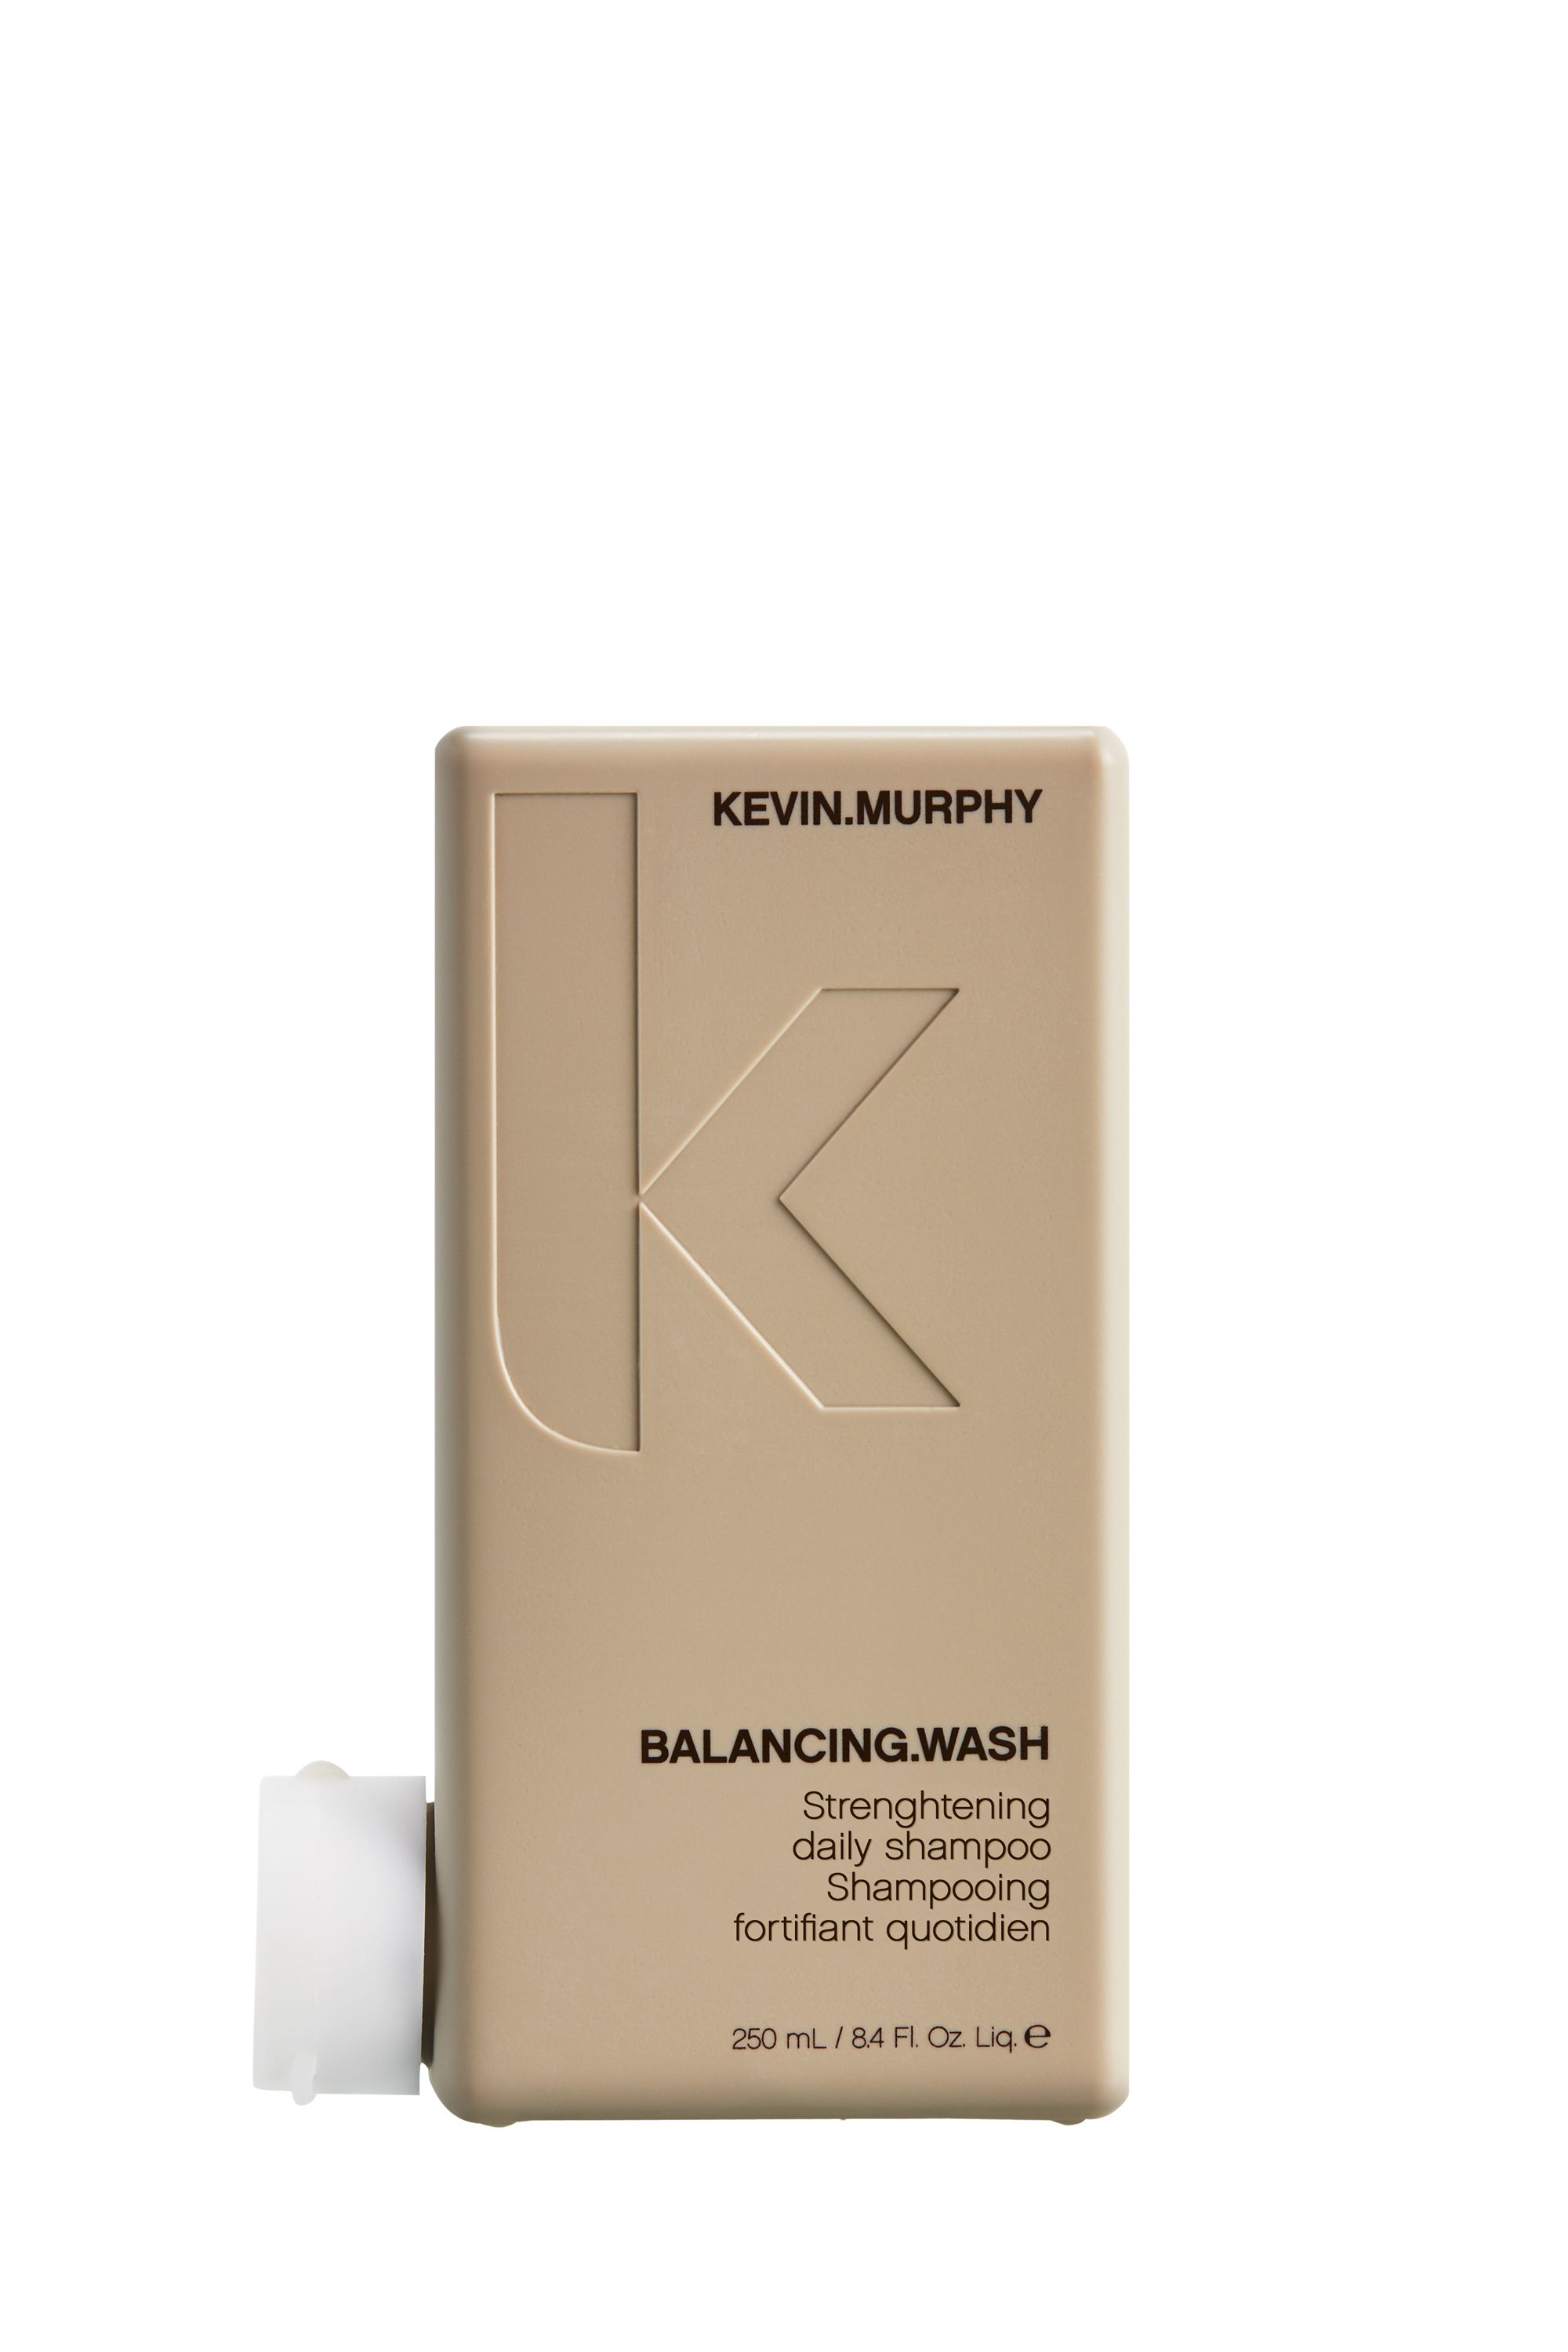 Blissim : KEVIN.MURPHY - Shampoing quotidien lissant BALANCING.WASH - Shampoing quotidien lissant BALANCING.WASH